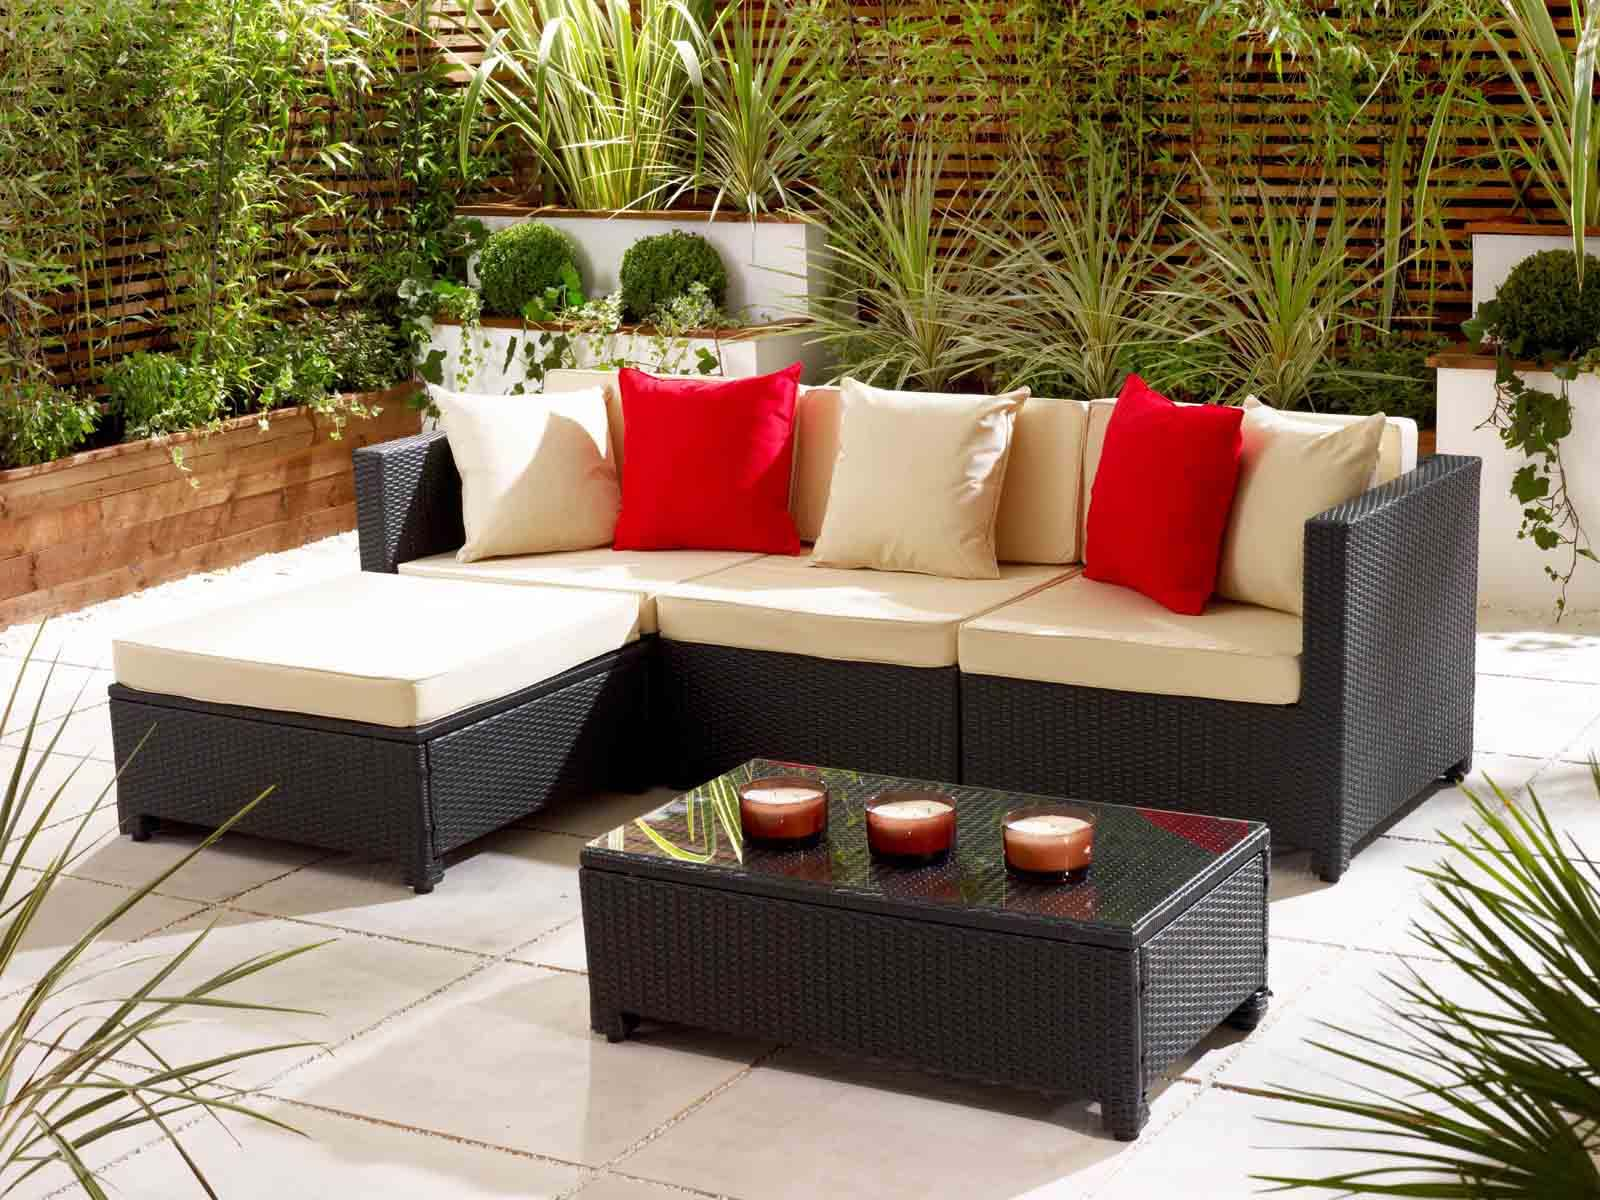 how to keep spiders away from patio furniture